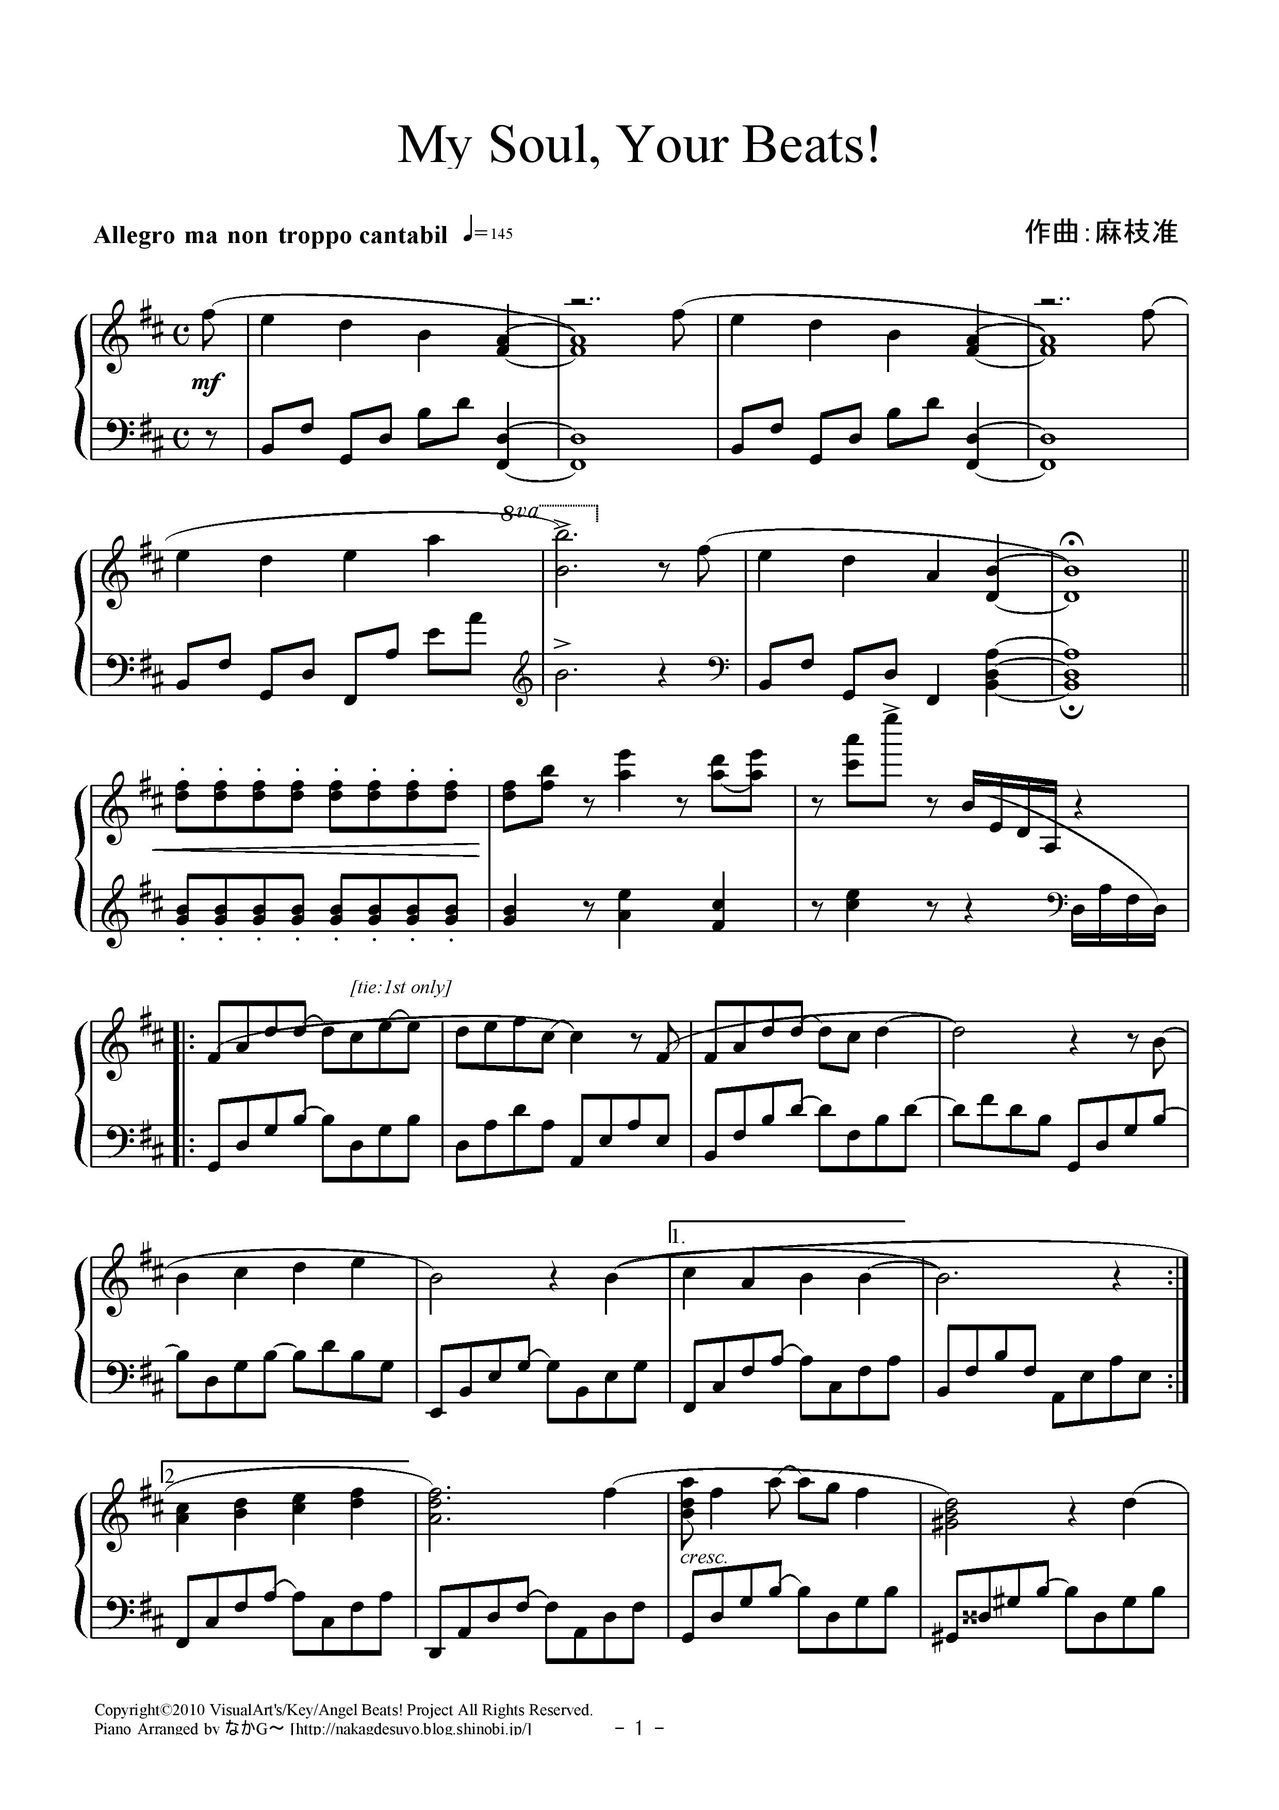 Music Notation Notes General Questions About Piano Sheet Music Notation Music